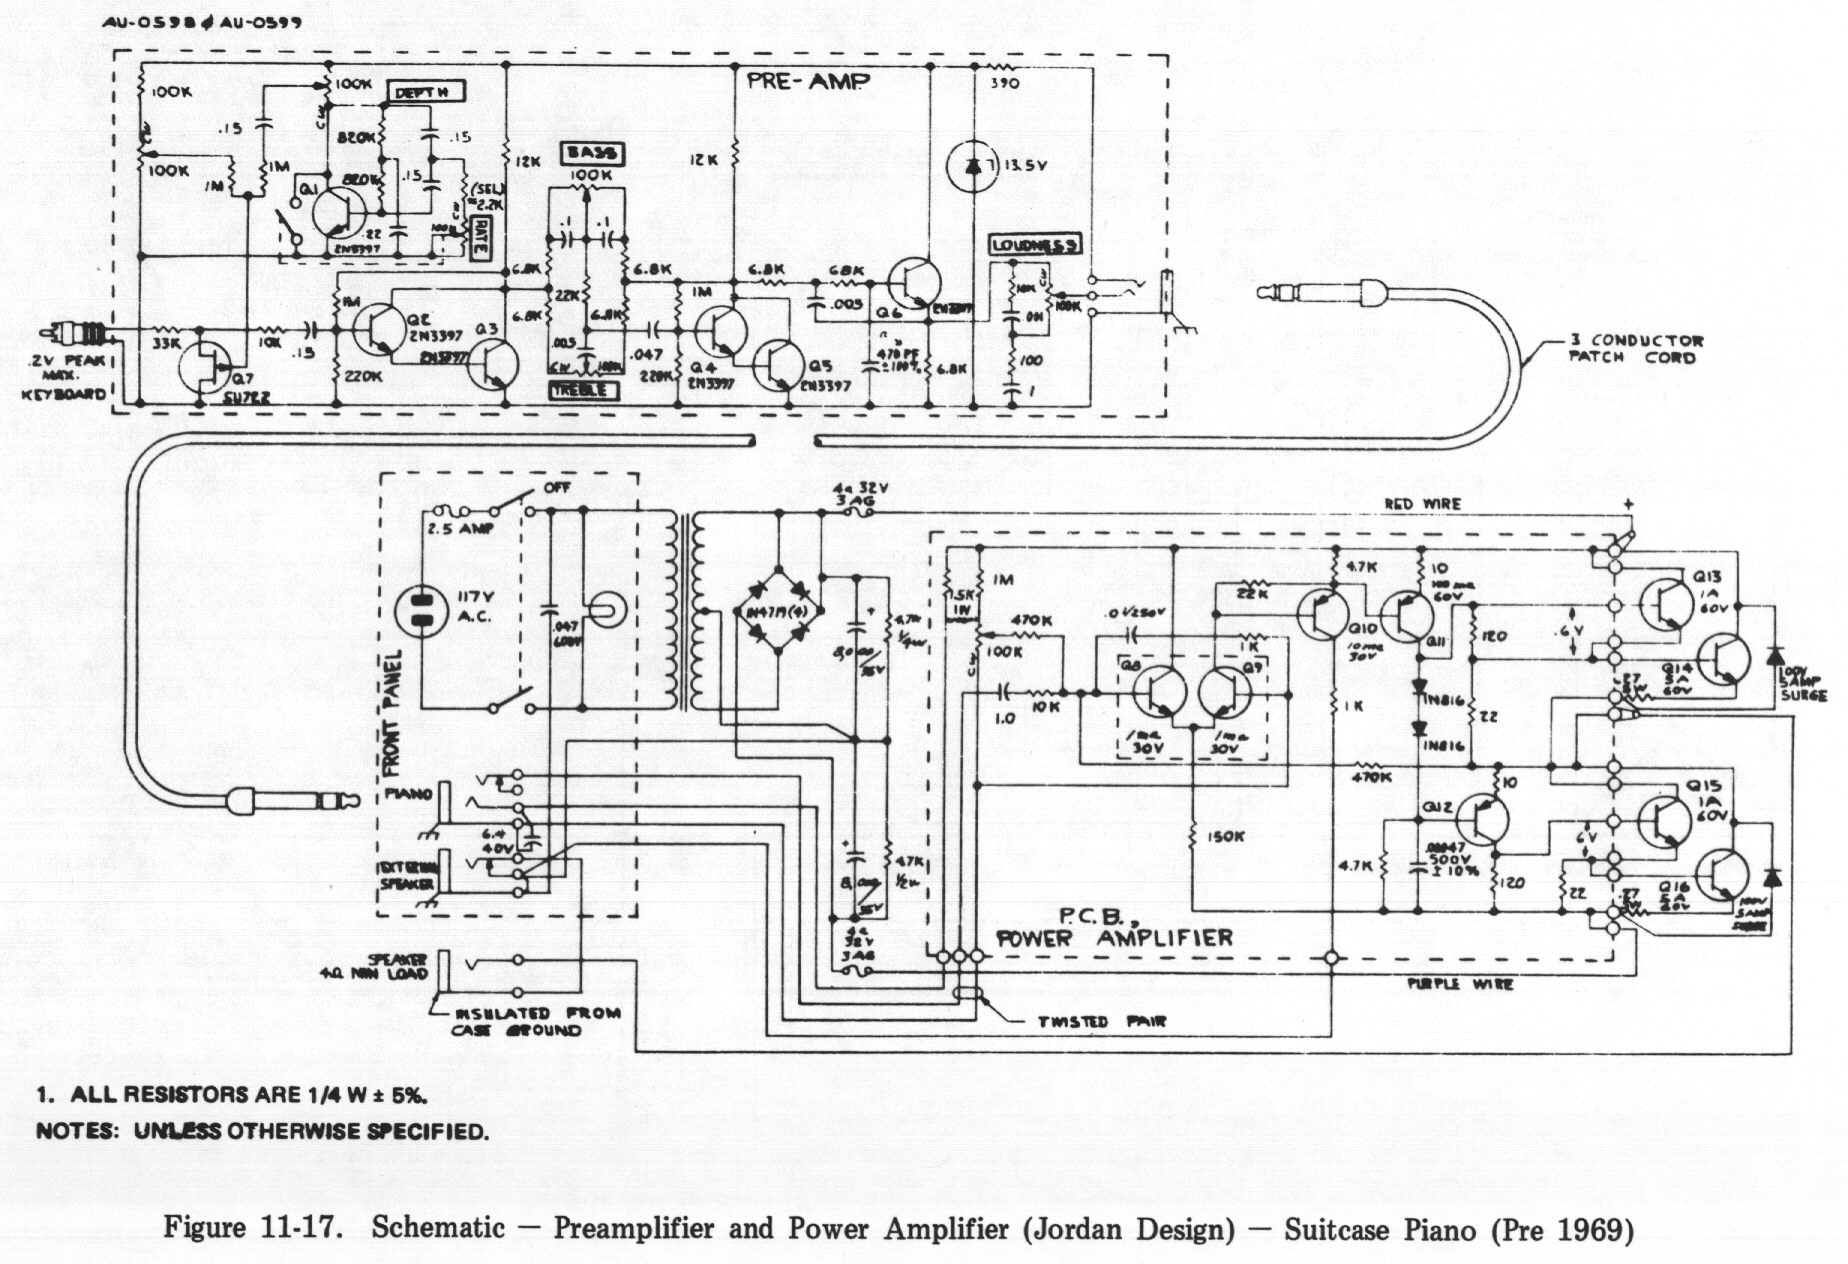 hight resolution of 11 17 schematic preamplifier and power amplifier jordan design suitcase piano pre 1969